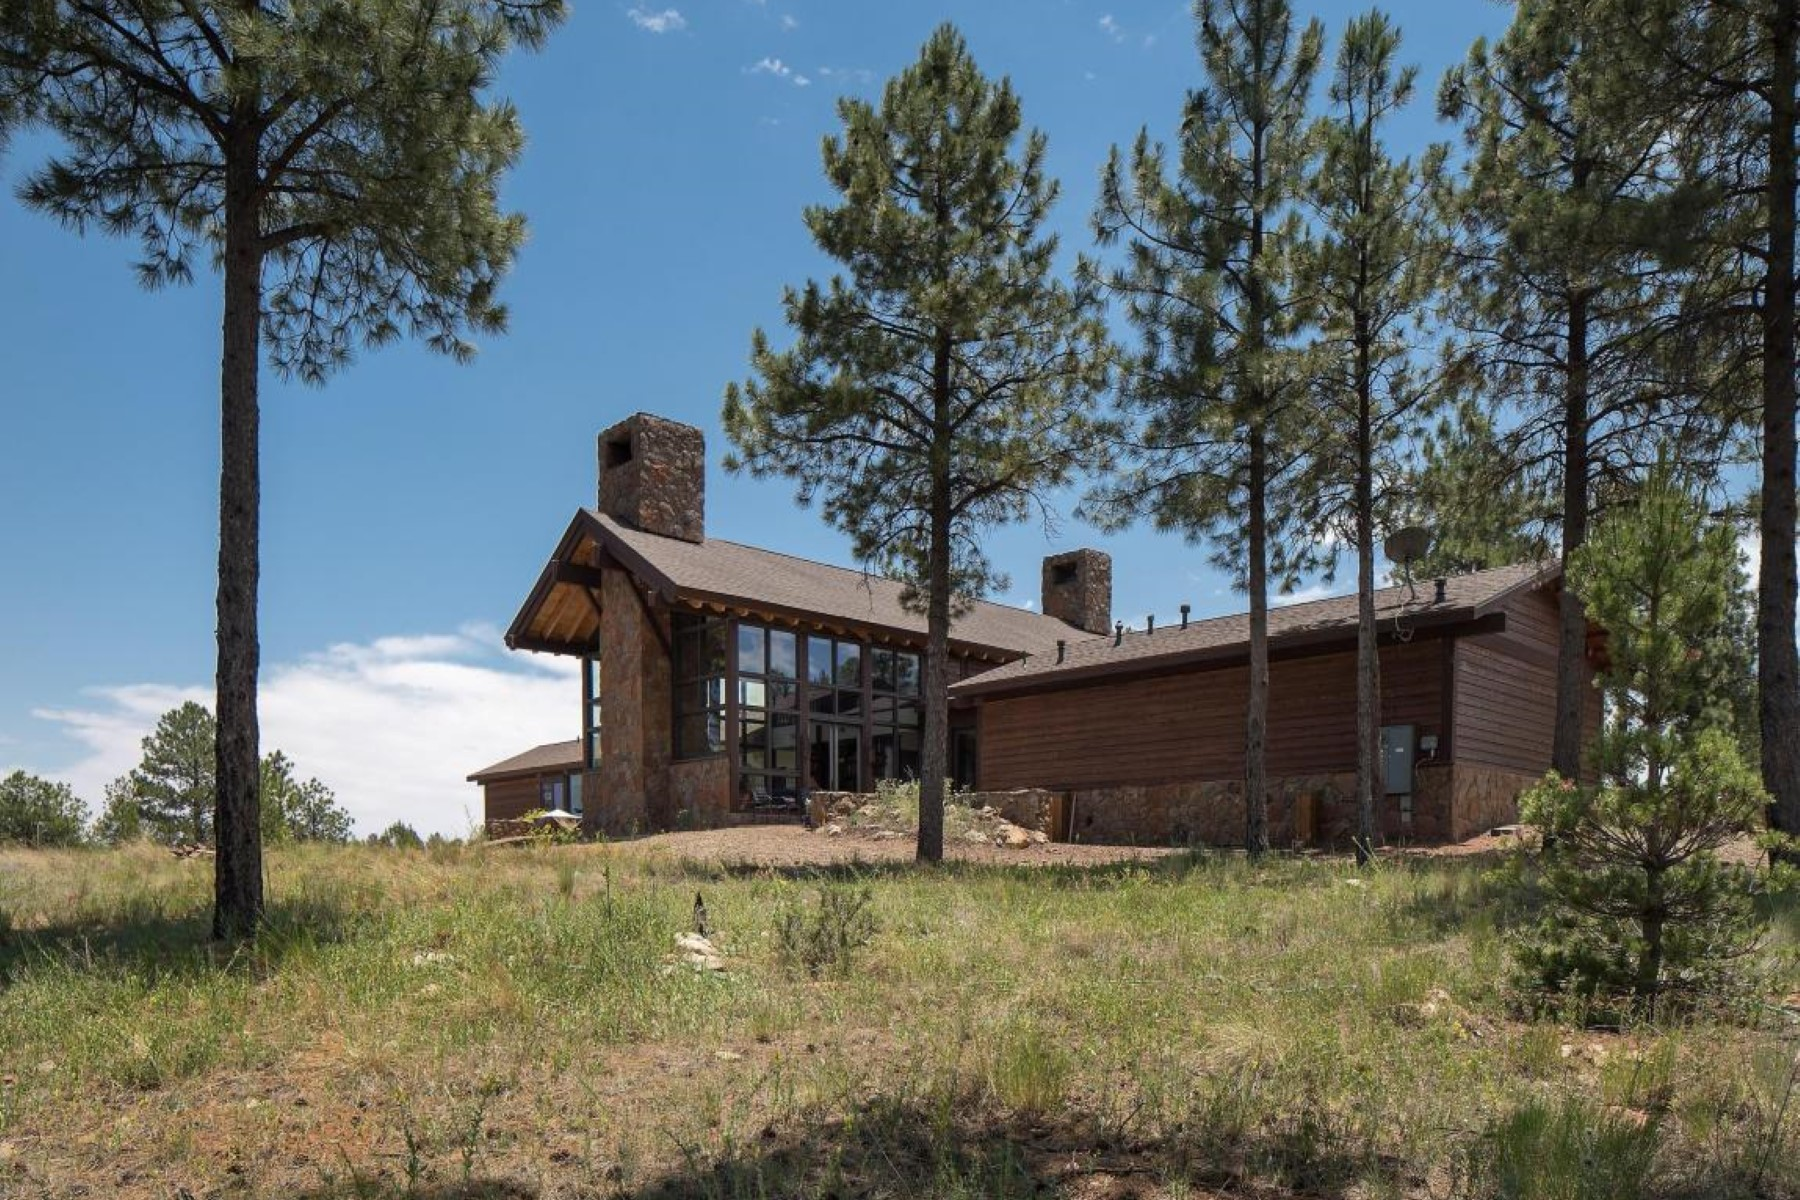 Maison unifamiliale pour l Vente à Spectacularly elegant mountain retreat 424 S Fourth St Flagstaff, Arizona, 86004 États-Unis